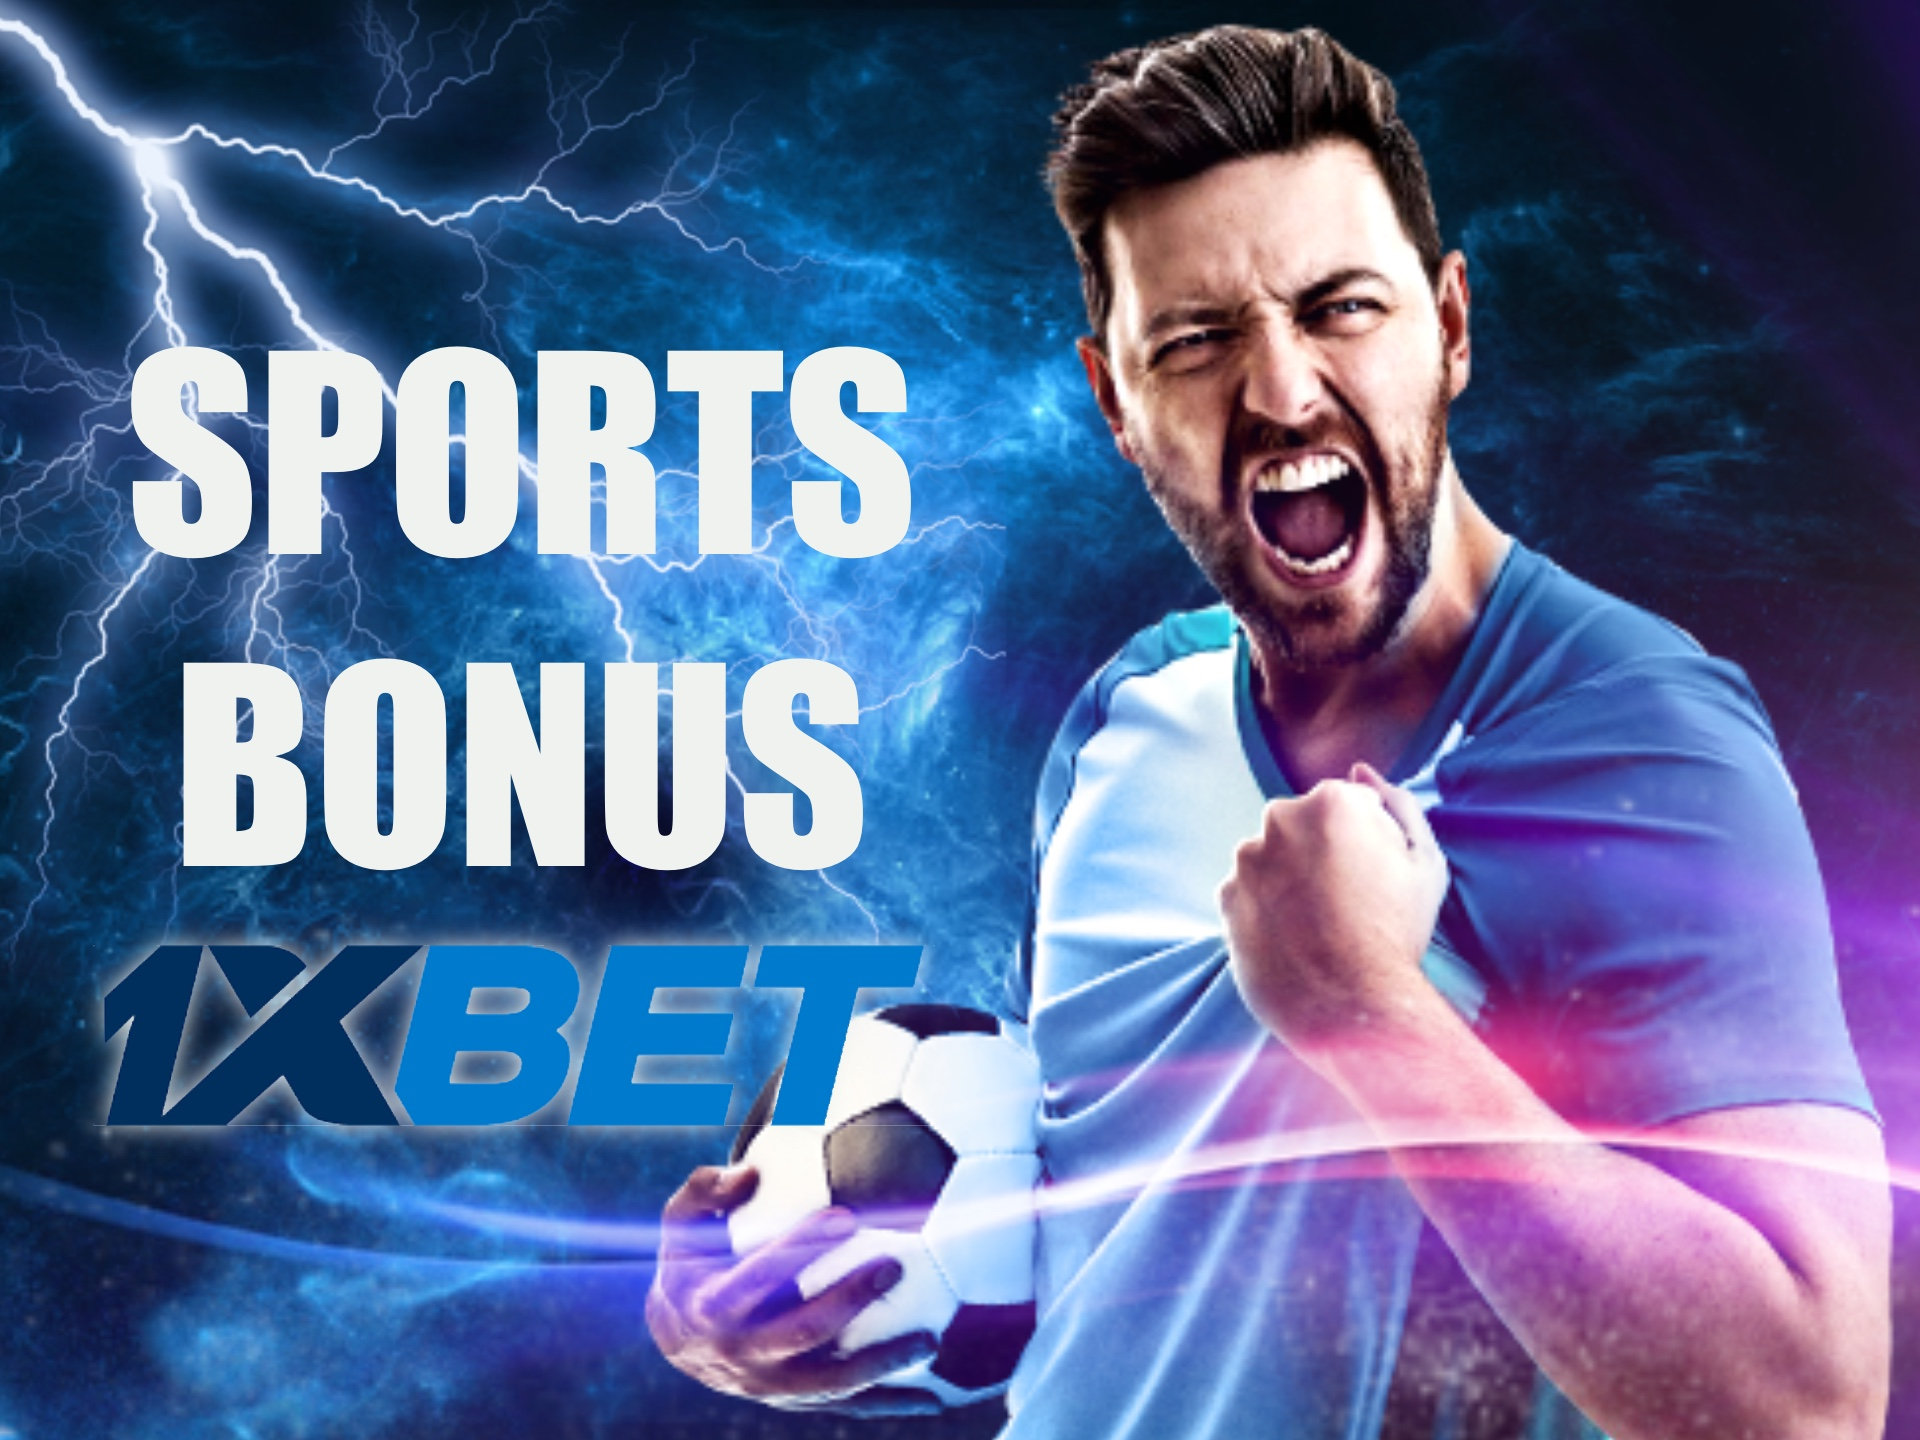 1xbet offers a great bonus on sport betting for new players.